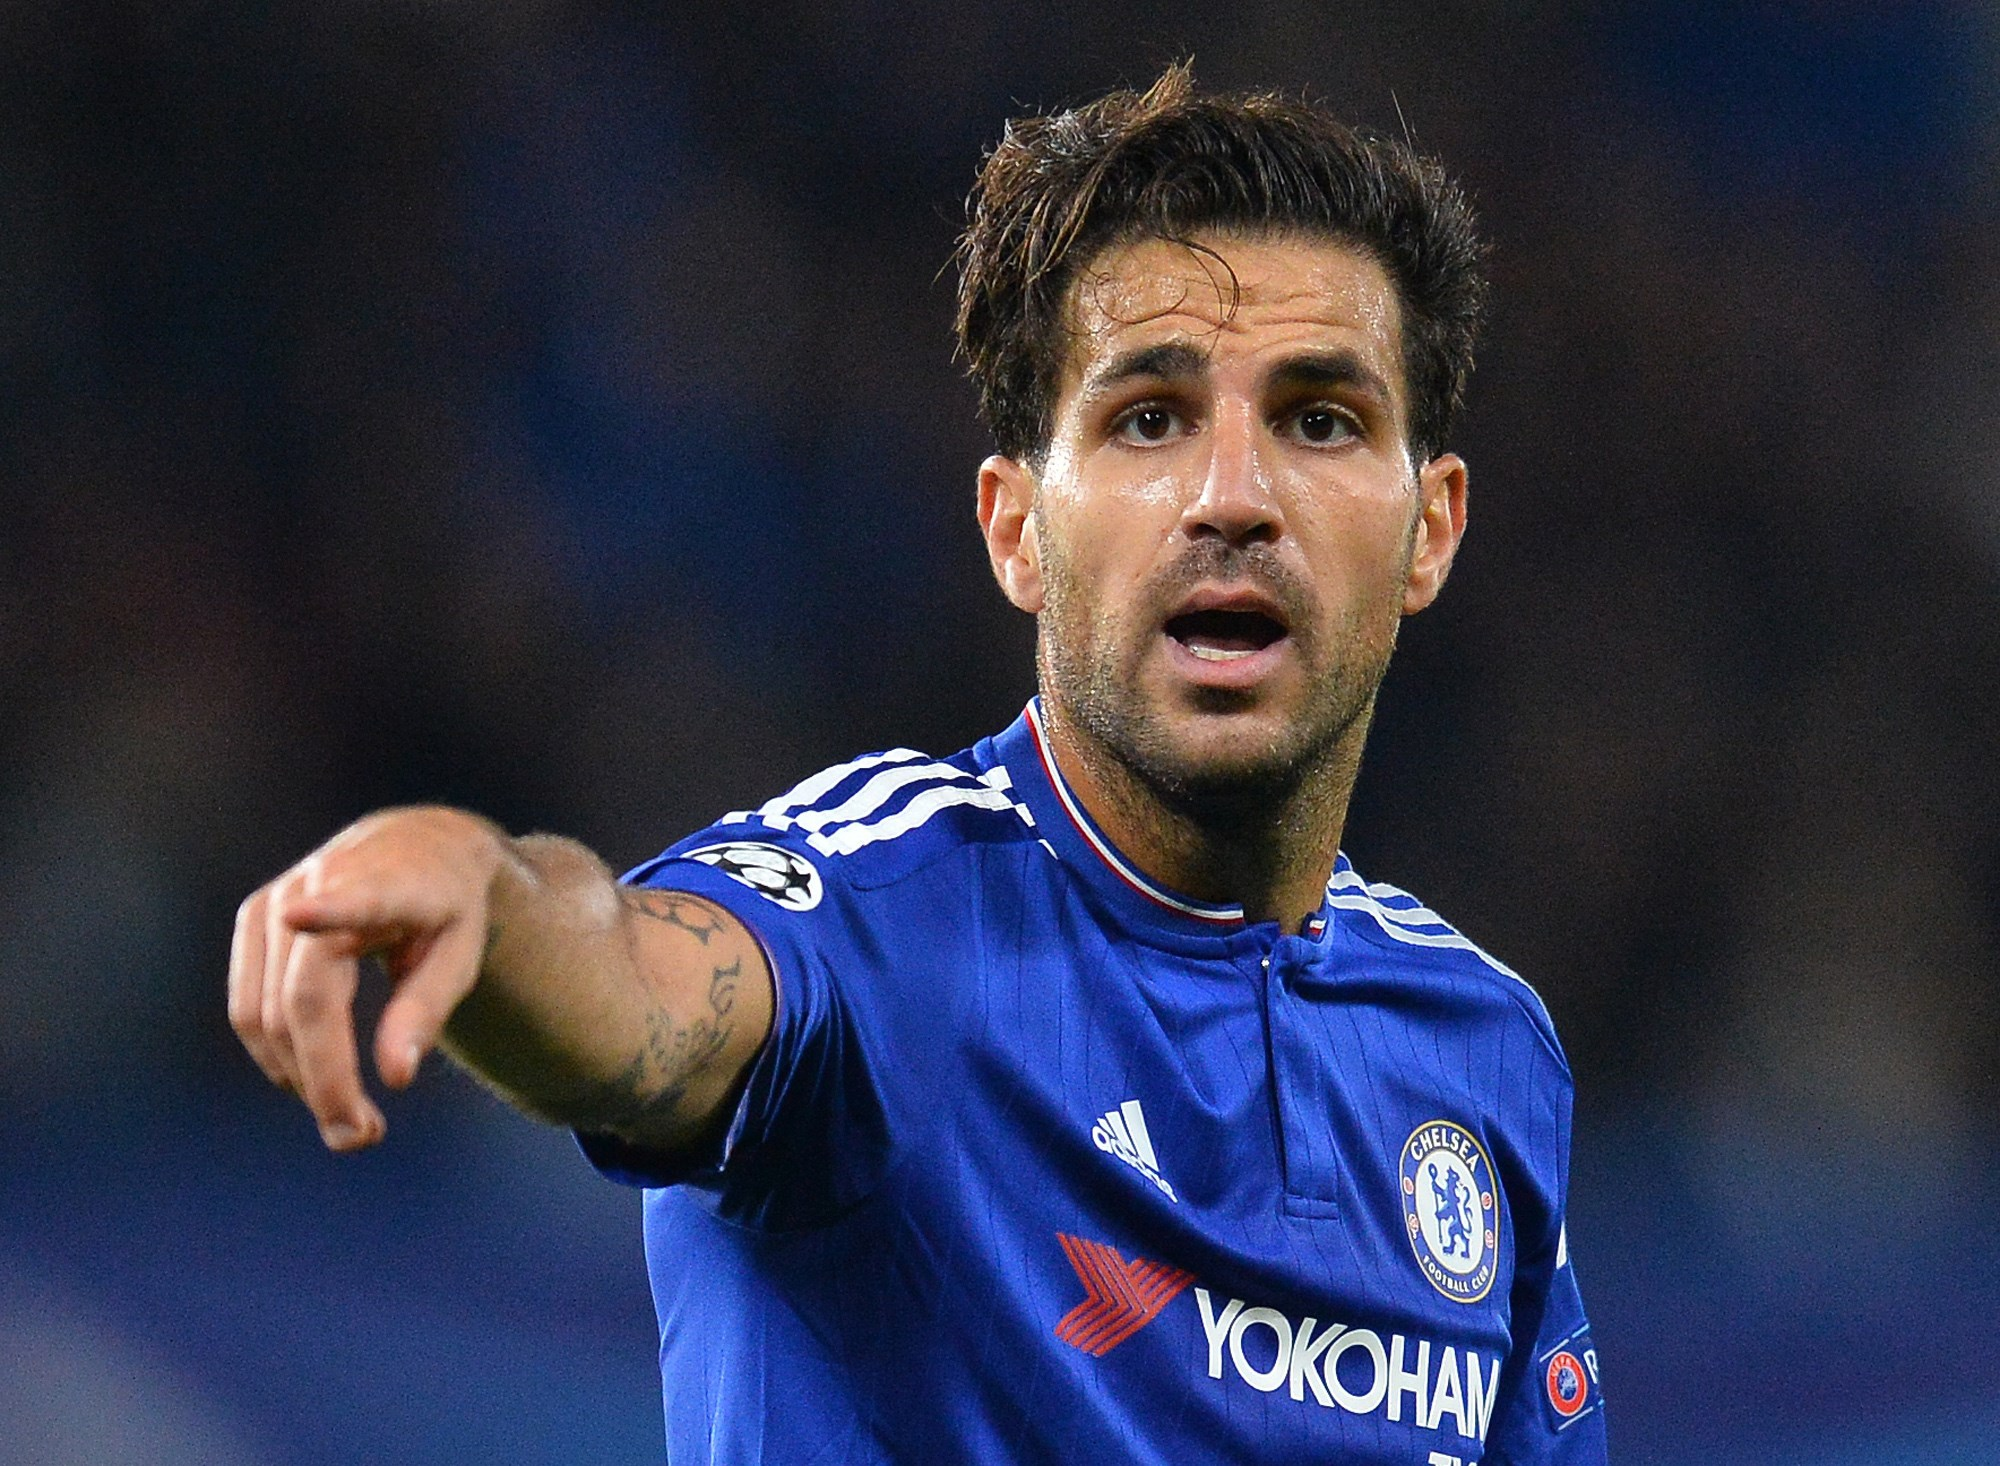 Chelsea's Spanish midfielder Cesc Fabregas gestures during the UEFA Champions League, group G, football match between Chelsea and Maccabi Tel Aviv at Stamford Bridge in London on September 16, 2015.    AFP PHOTO / GLYN KIRK        (Photo credit should read GLYN KIRK/AFP/Getty Images)